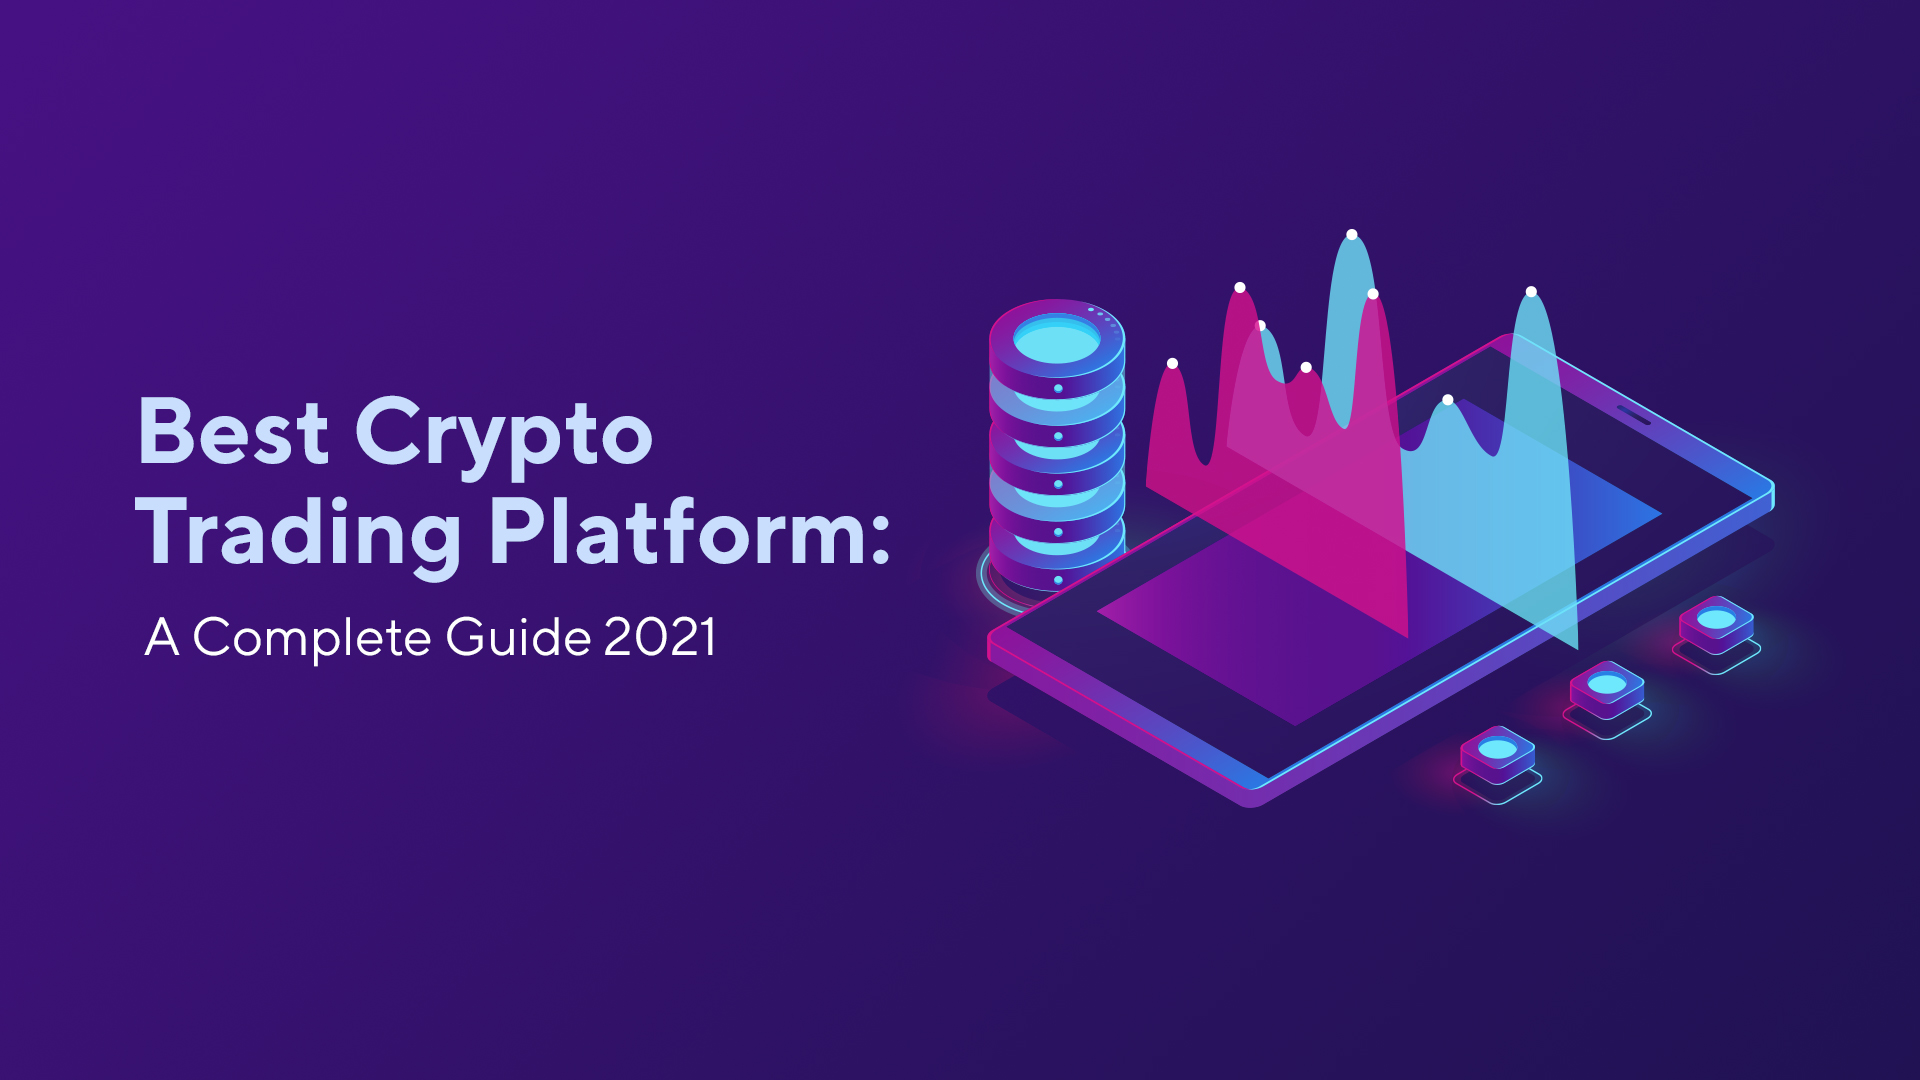 Best Crypto Trading Platform: A Complete Guide 2021